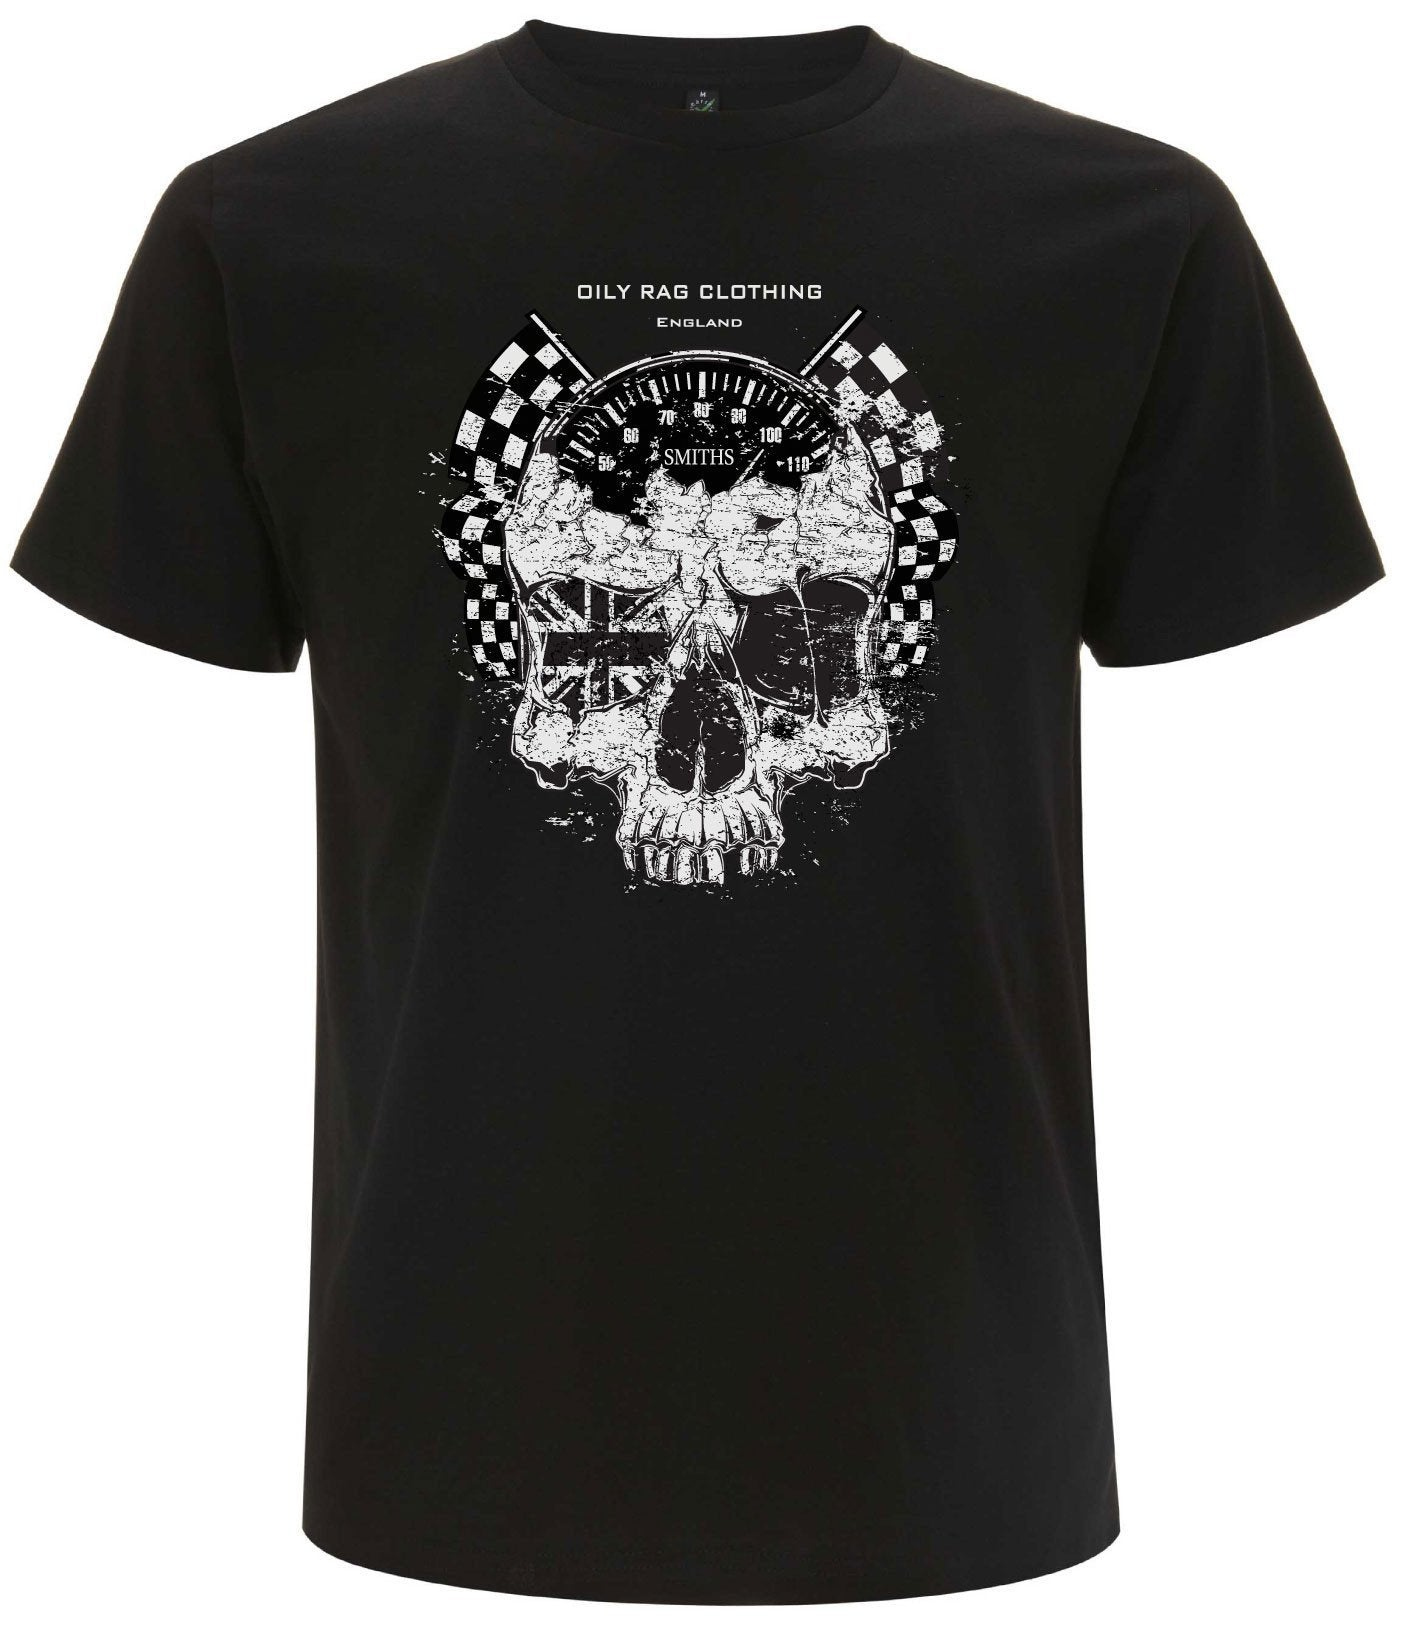 Oily Rag Clothing - Oily Rag Clothing Ton Up Skull T'Shirt - T-Shirts - Salt Flats Clothing